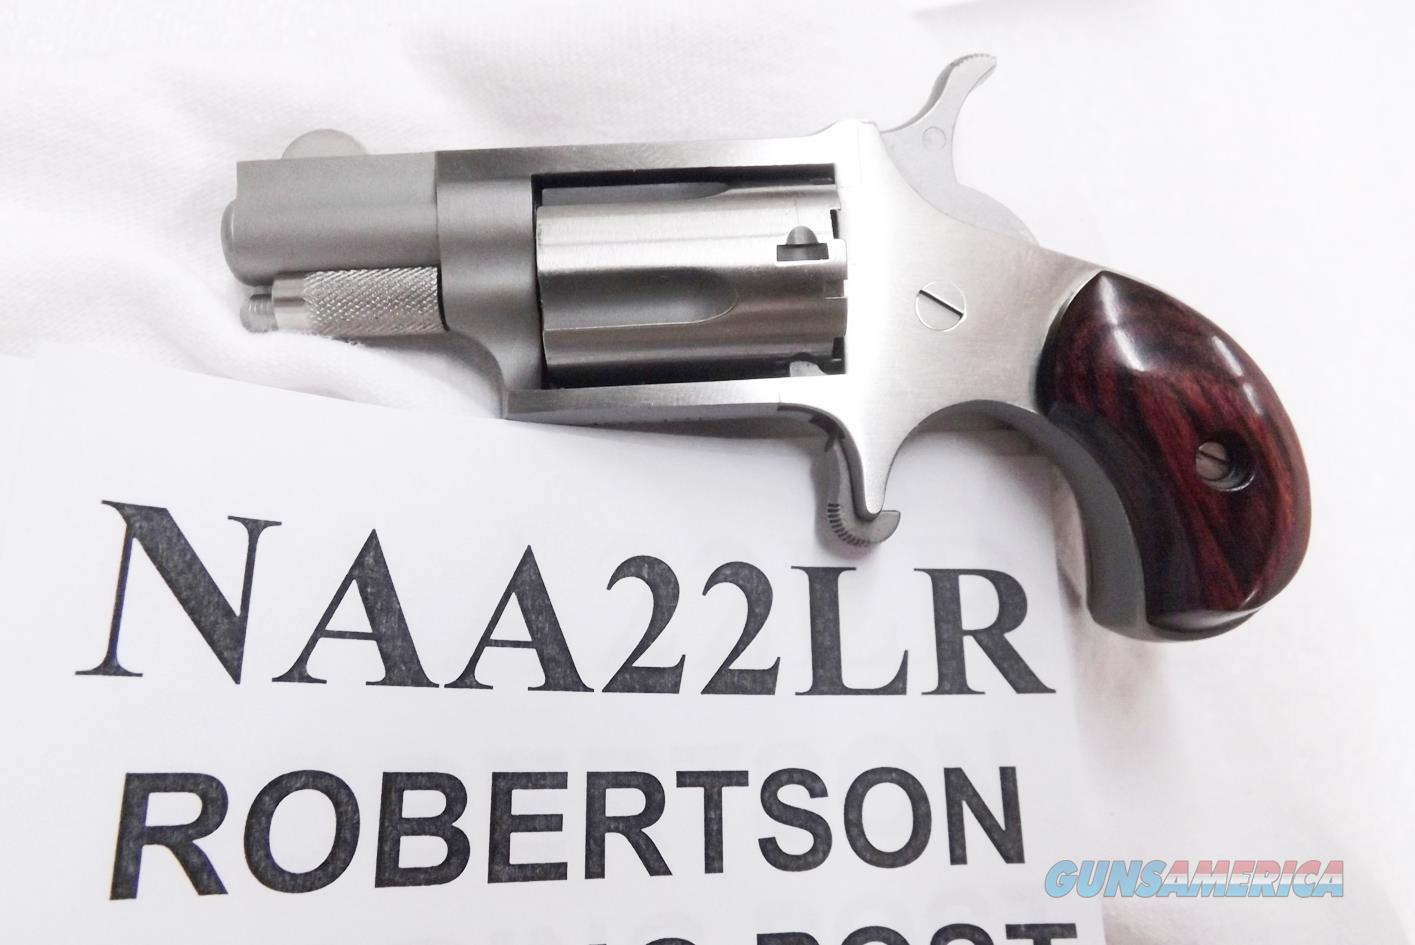 North American .22 LR Mini Revolver 1 inch Snub Stainless 5 Shot NIB Steel Locking Case NAA22LR NAA Arms Manufacturing 22 Long Rifle CA DC OK Choice of Grips  Guns > Pistols > North American Arms Pistols